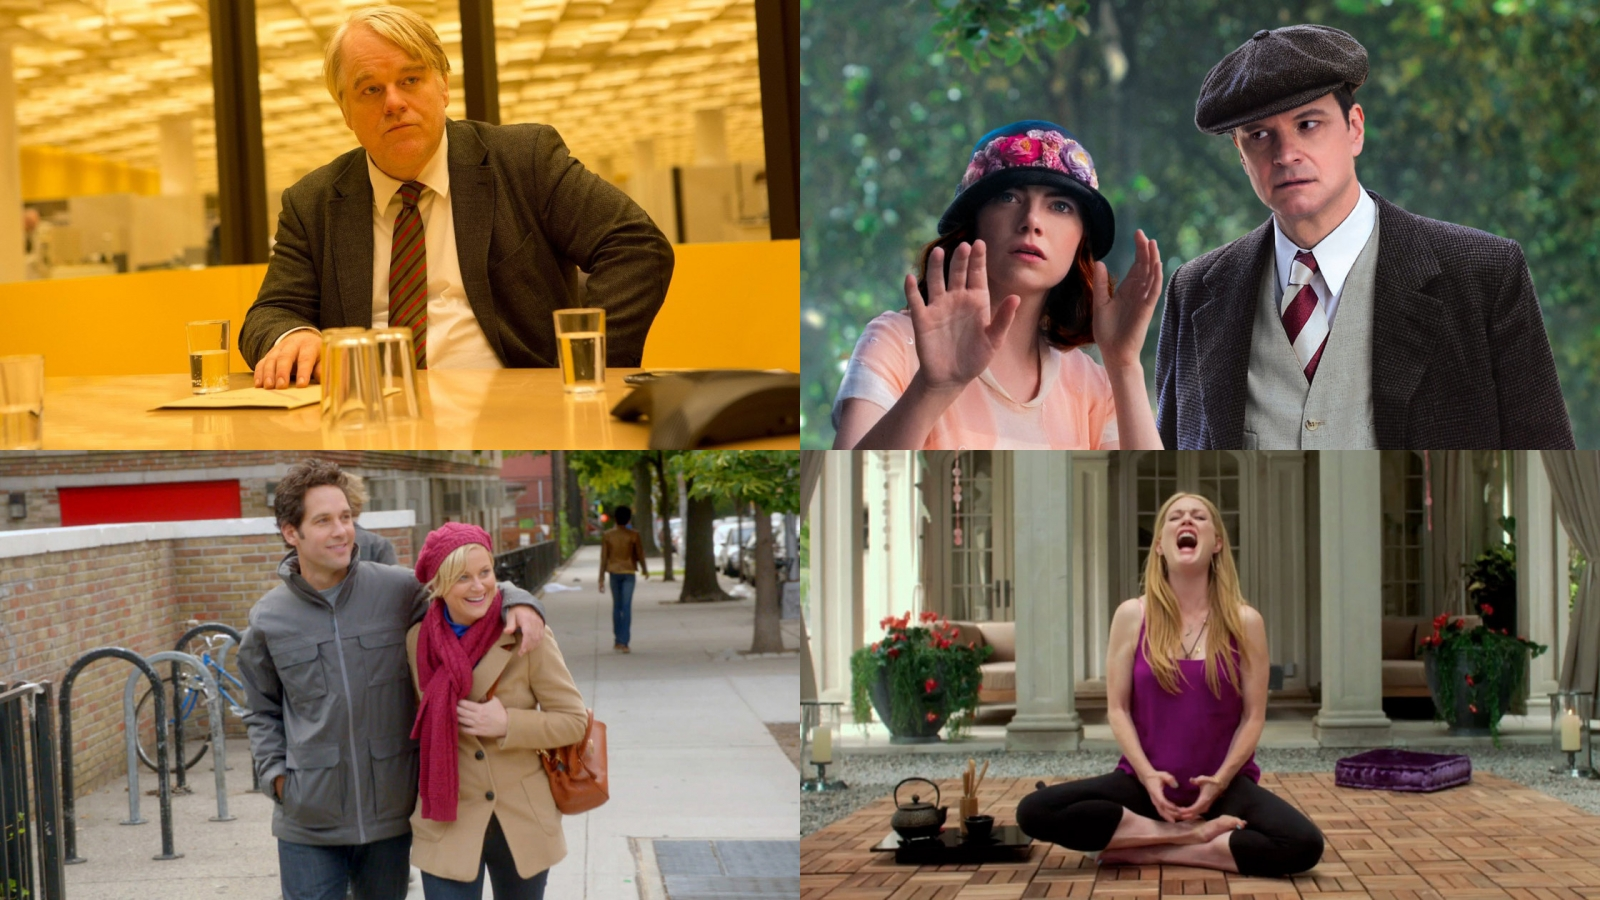 September Film Preview: They Came Together, A Most Wanted Man, Maps to the Stars